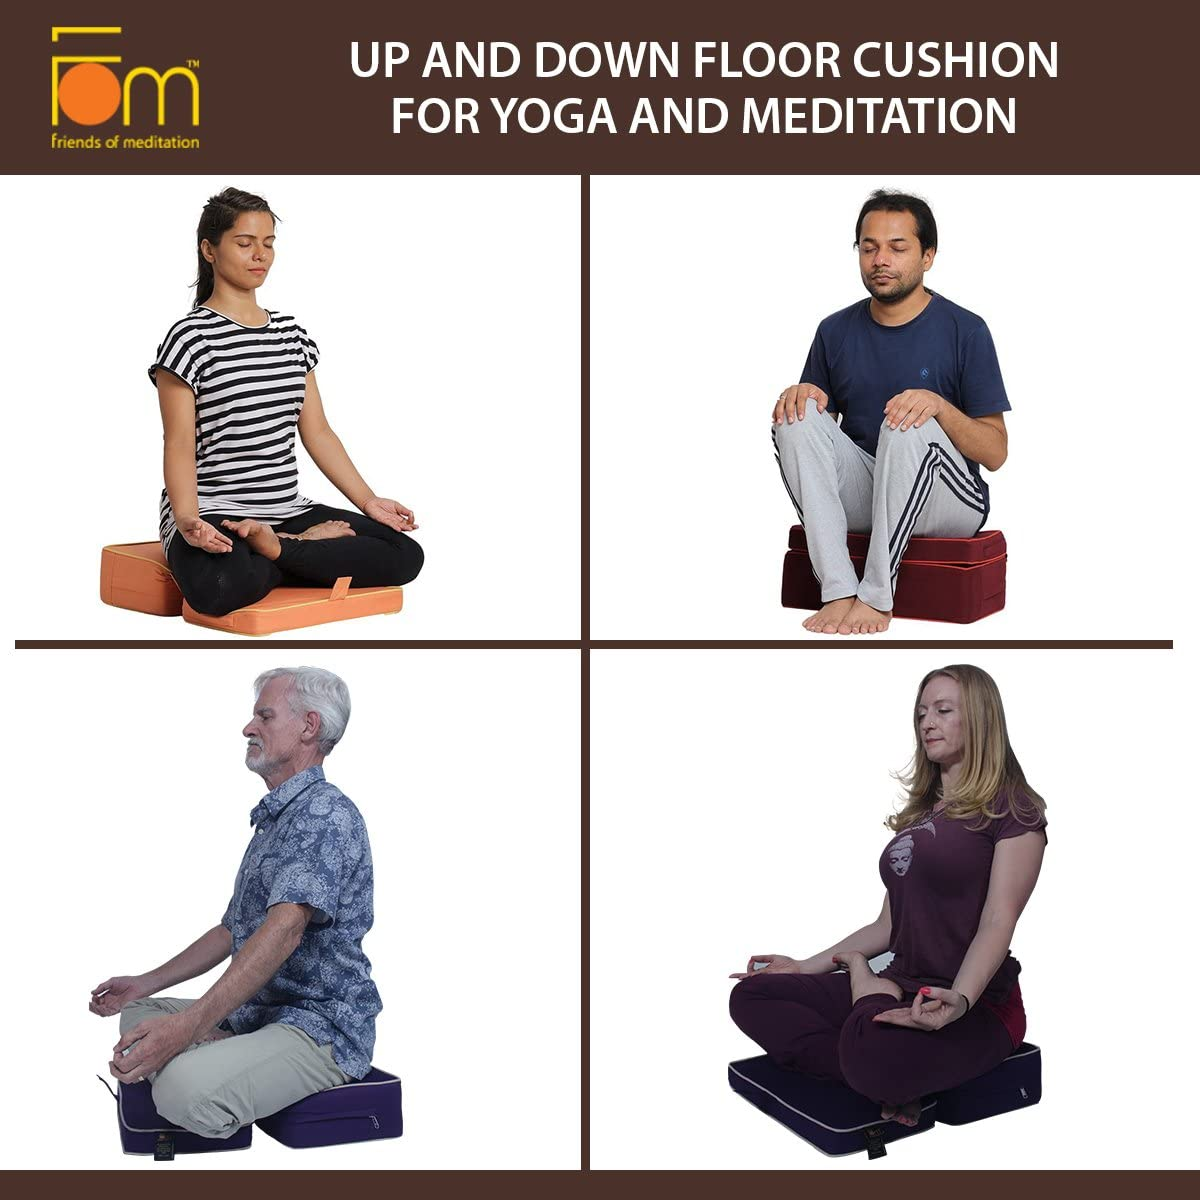 Friends Of Meditation Up and Down Floor Cushion for Yoga and Meditation